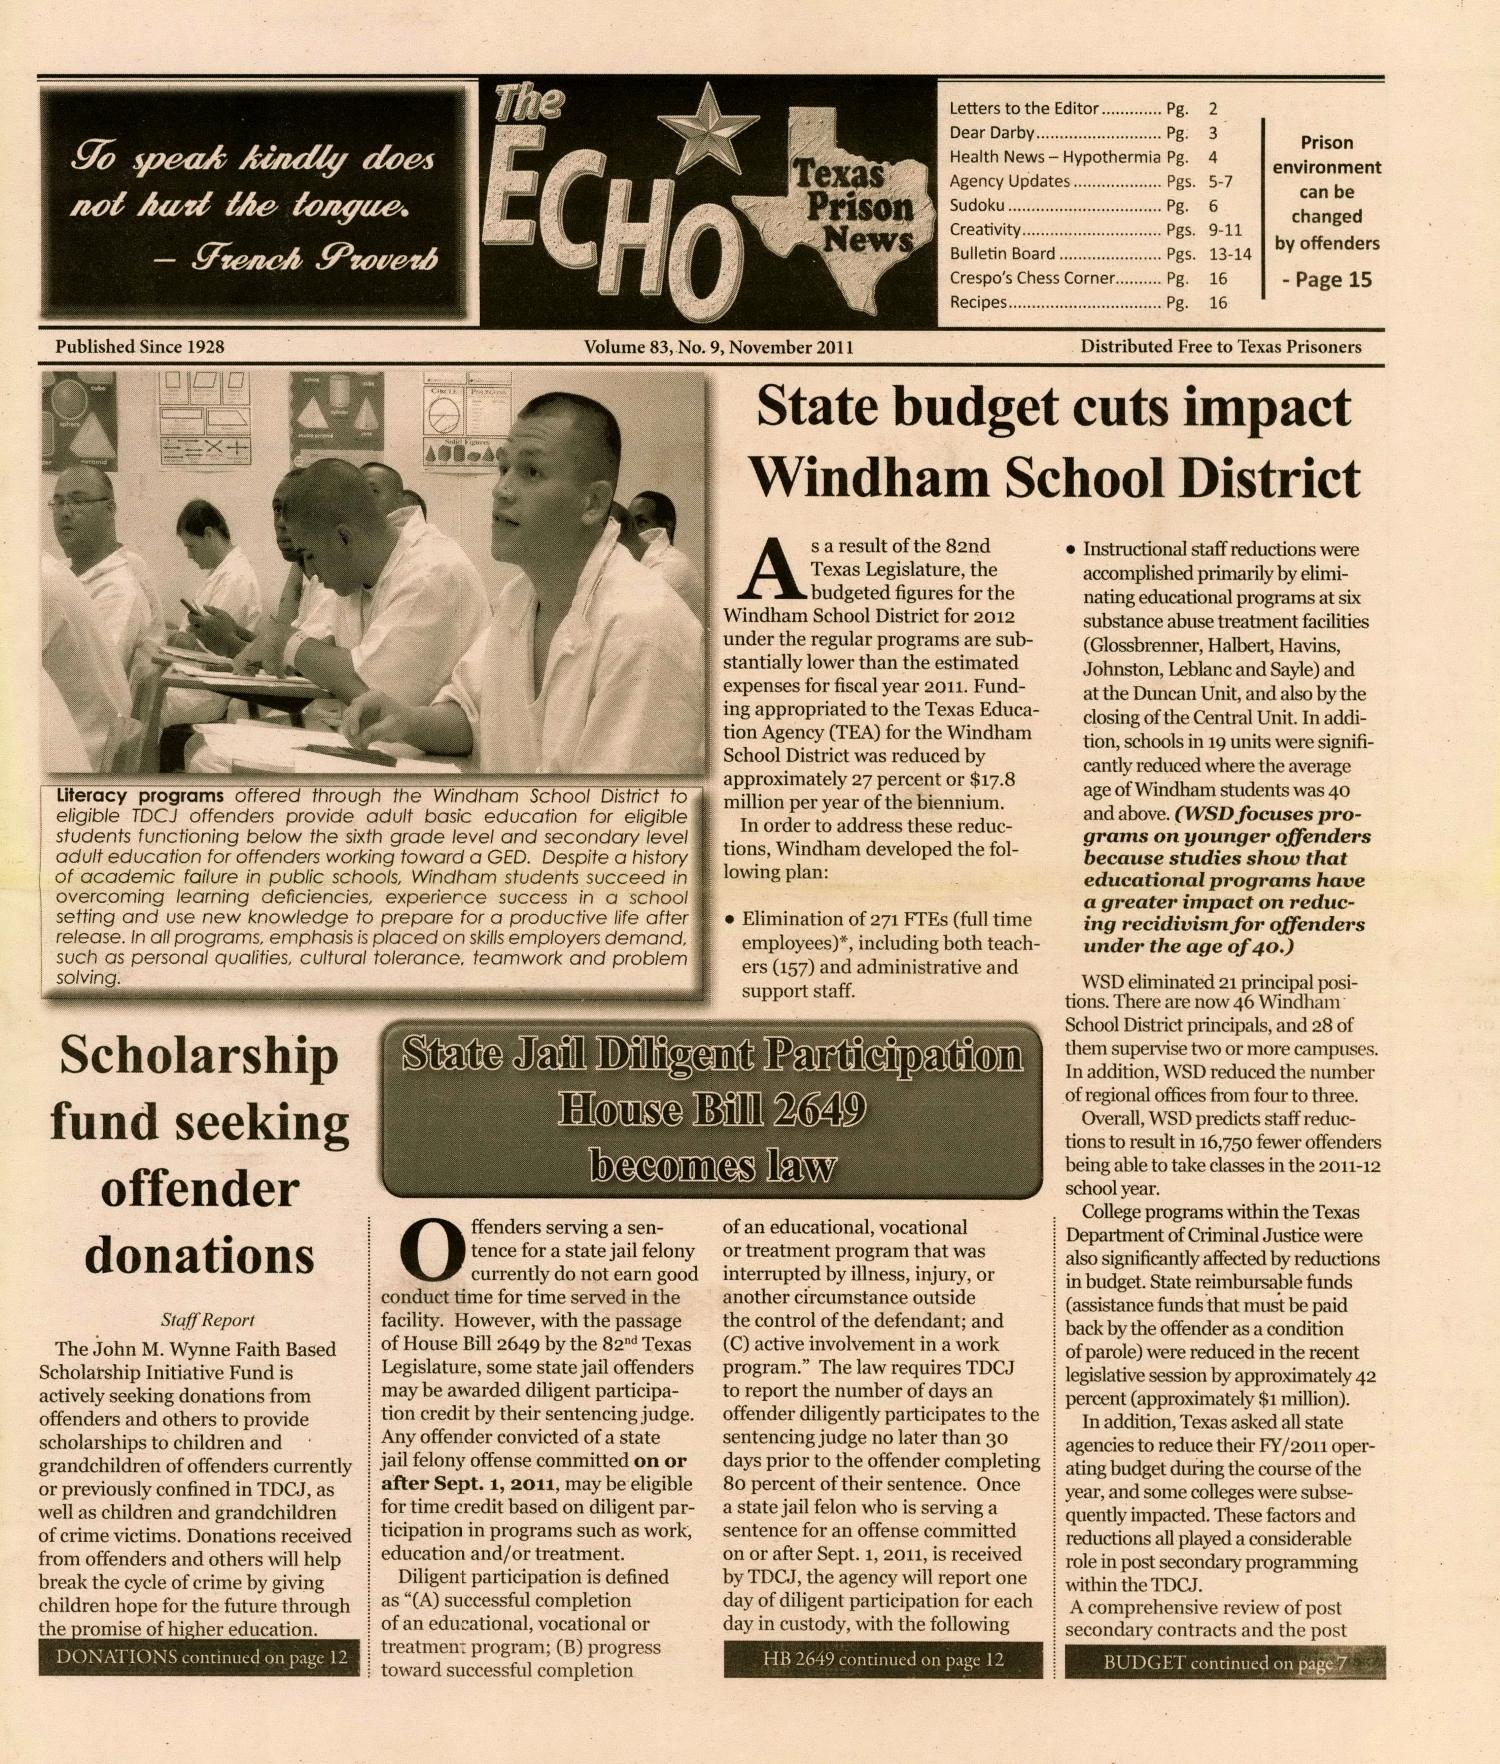 The ECHO, Volume 83, Number 9, November 2011 - The Portal to